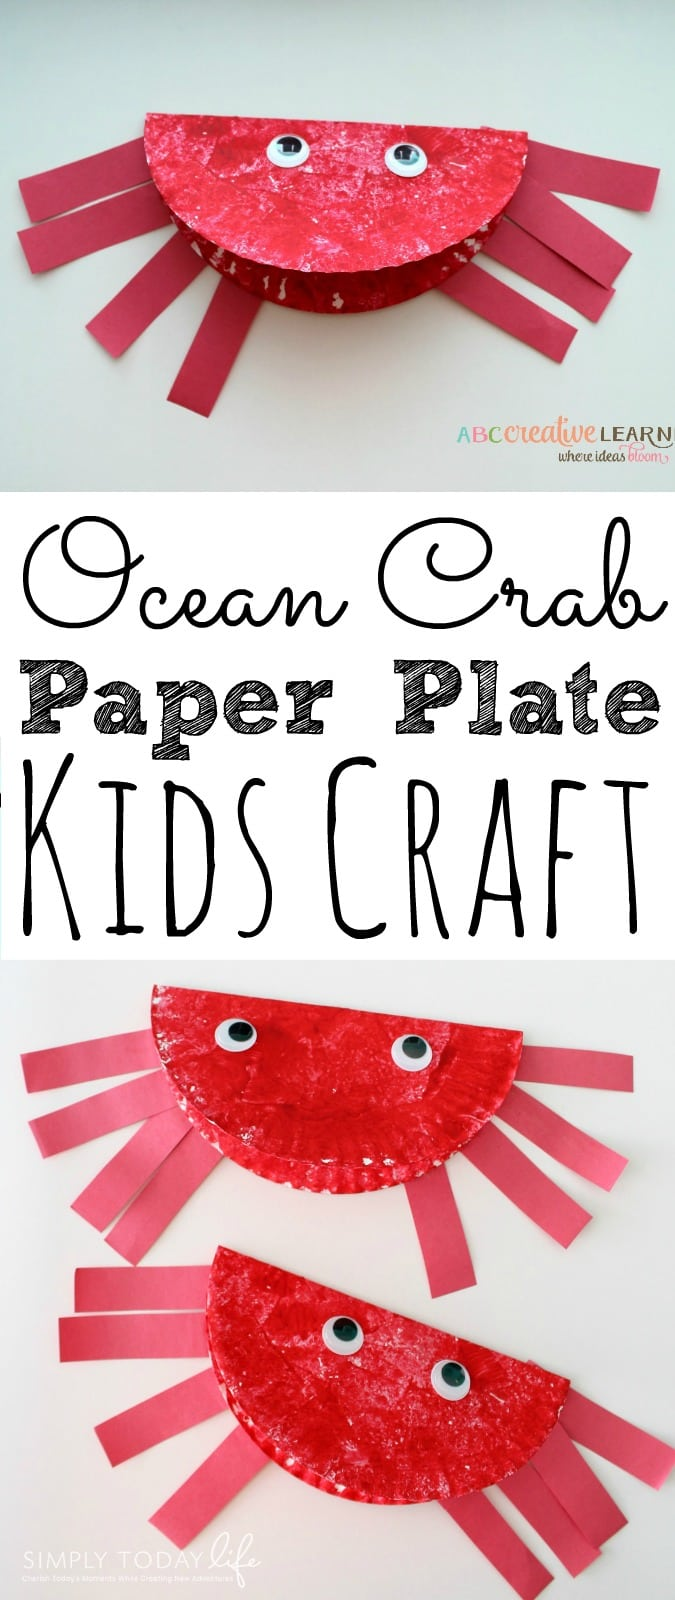 Paper Plate Ocean Crab Craft For Kids  sc 1 st  Simply Today Life & Easy Paper Plate Ocean Crab Craft For Kids To Celebrate Summer Time